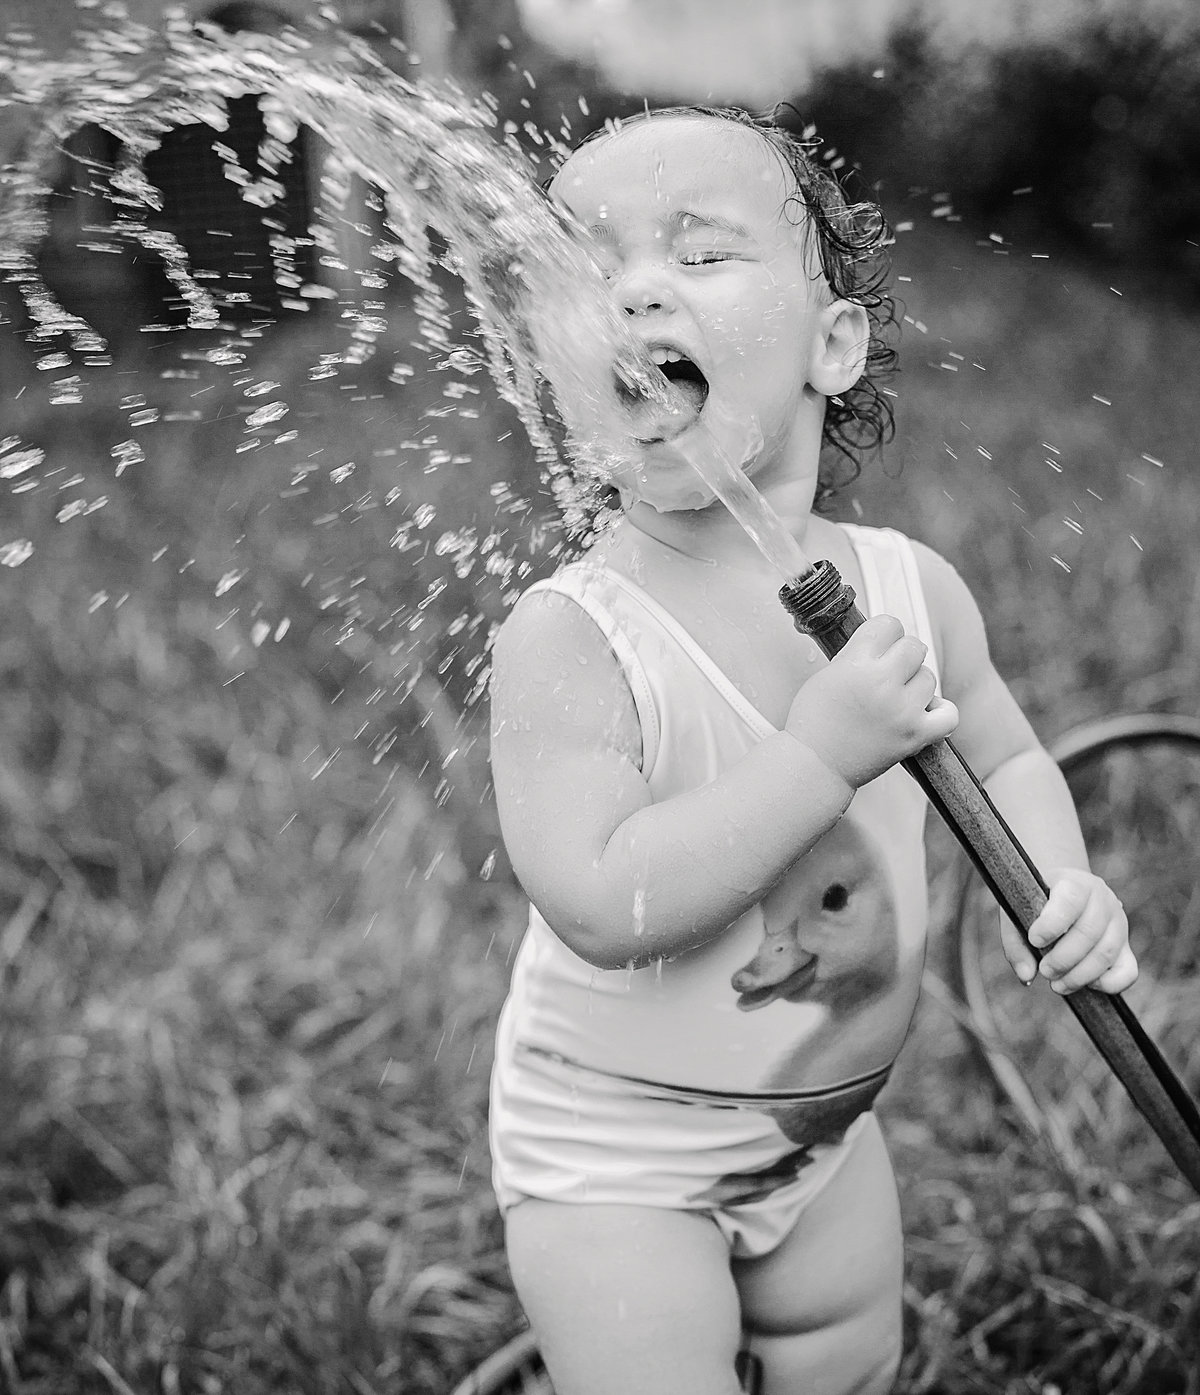 charlotte documentary photographer jamie lucido creates a beautiful and playful image of a small child drinking out of a backyard hose